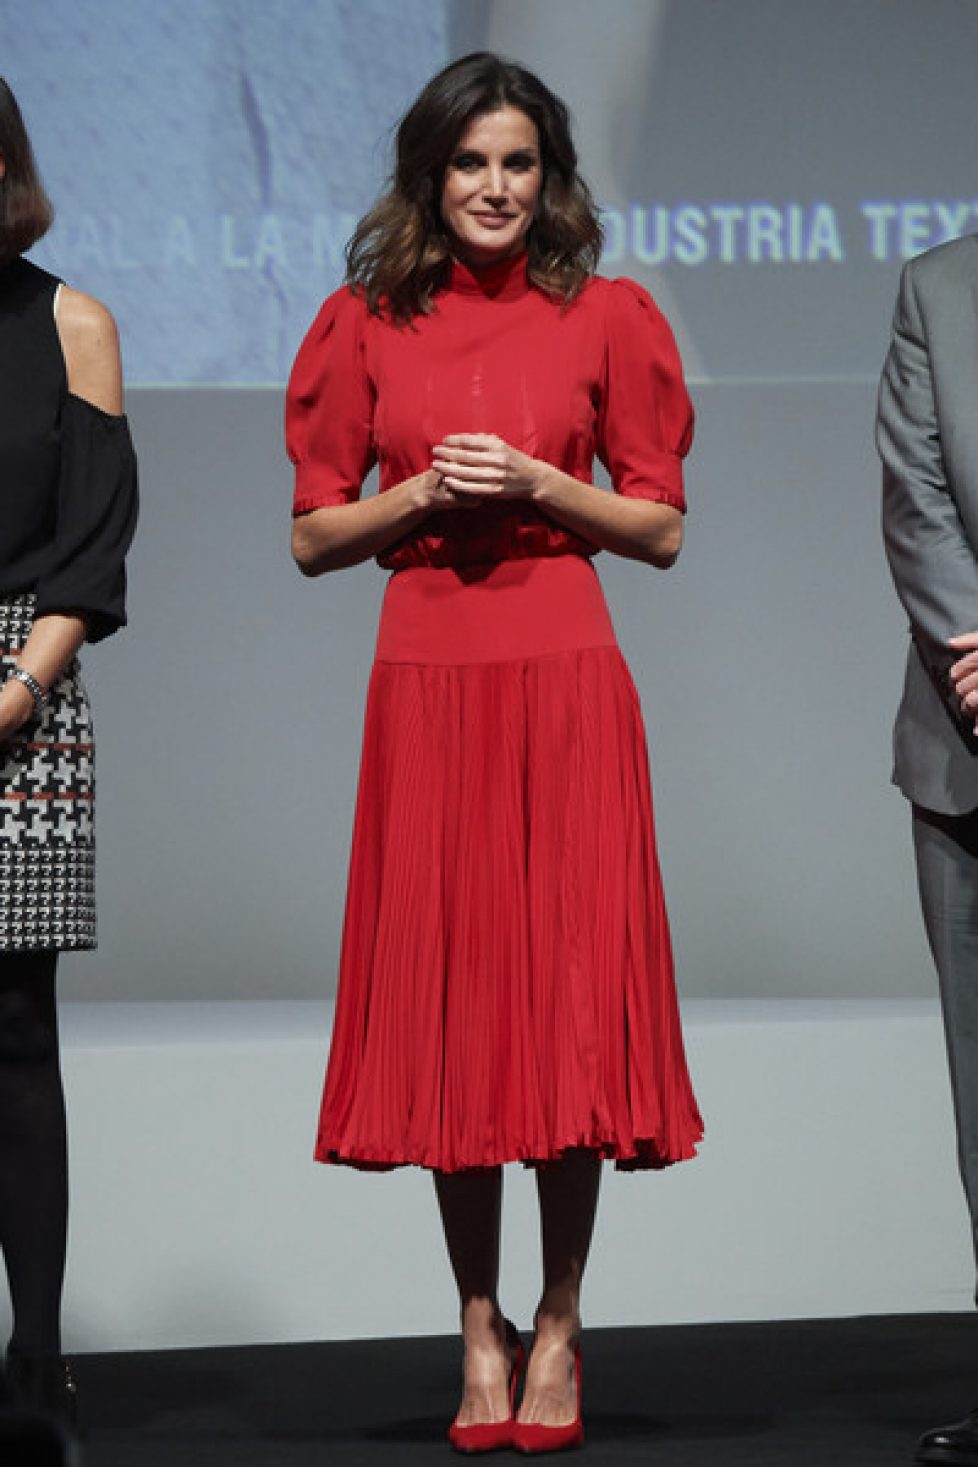 Queen+Letizia+Spain+Attends+National+Fashion+5phw3aMg1Eol